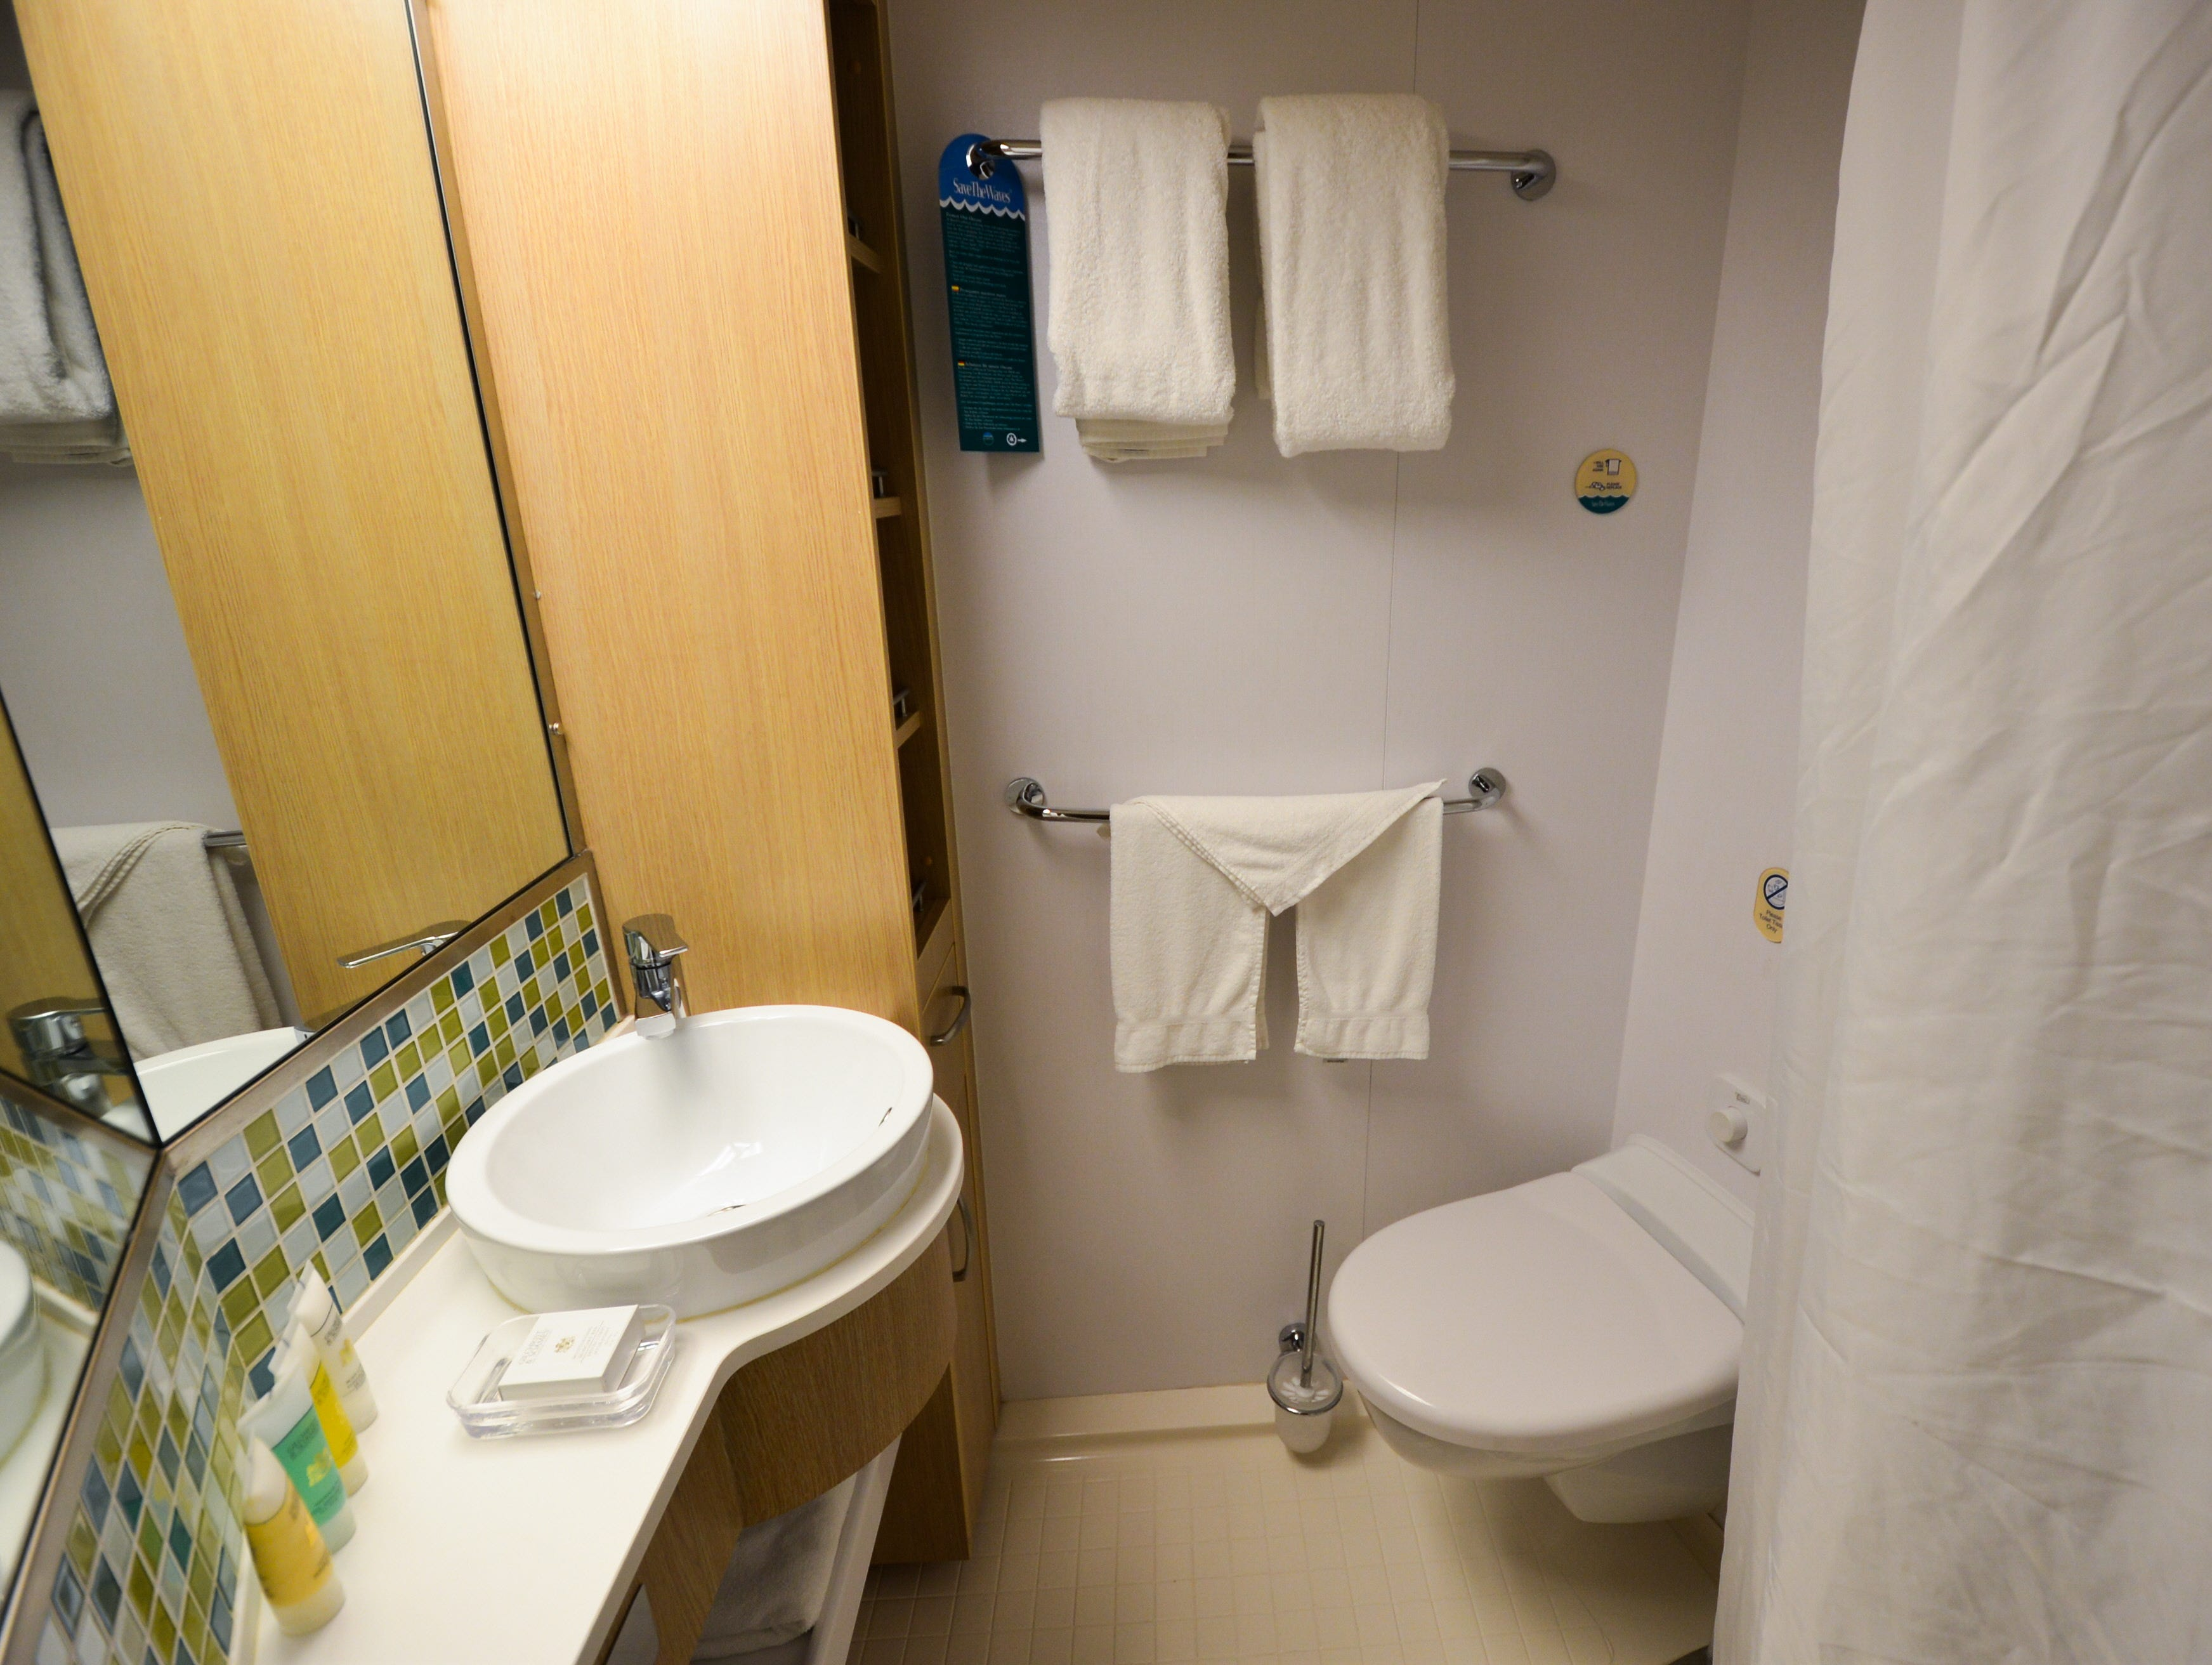 Secondary bathrooms in Royal Family Suites have showers but no bathtubs.